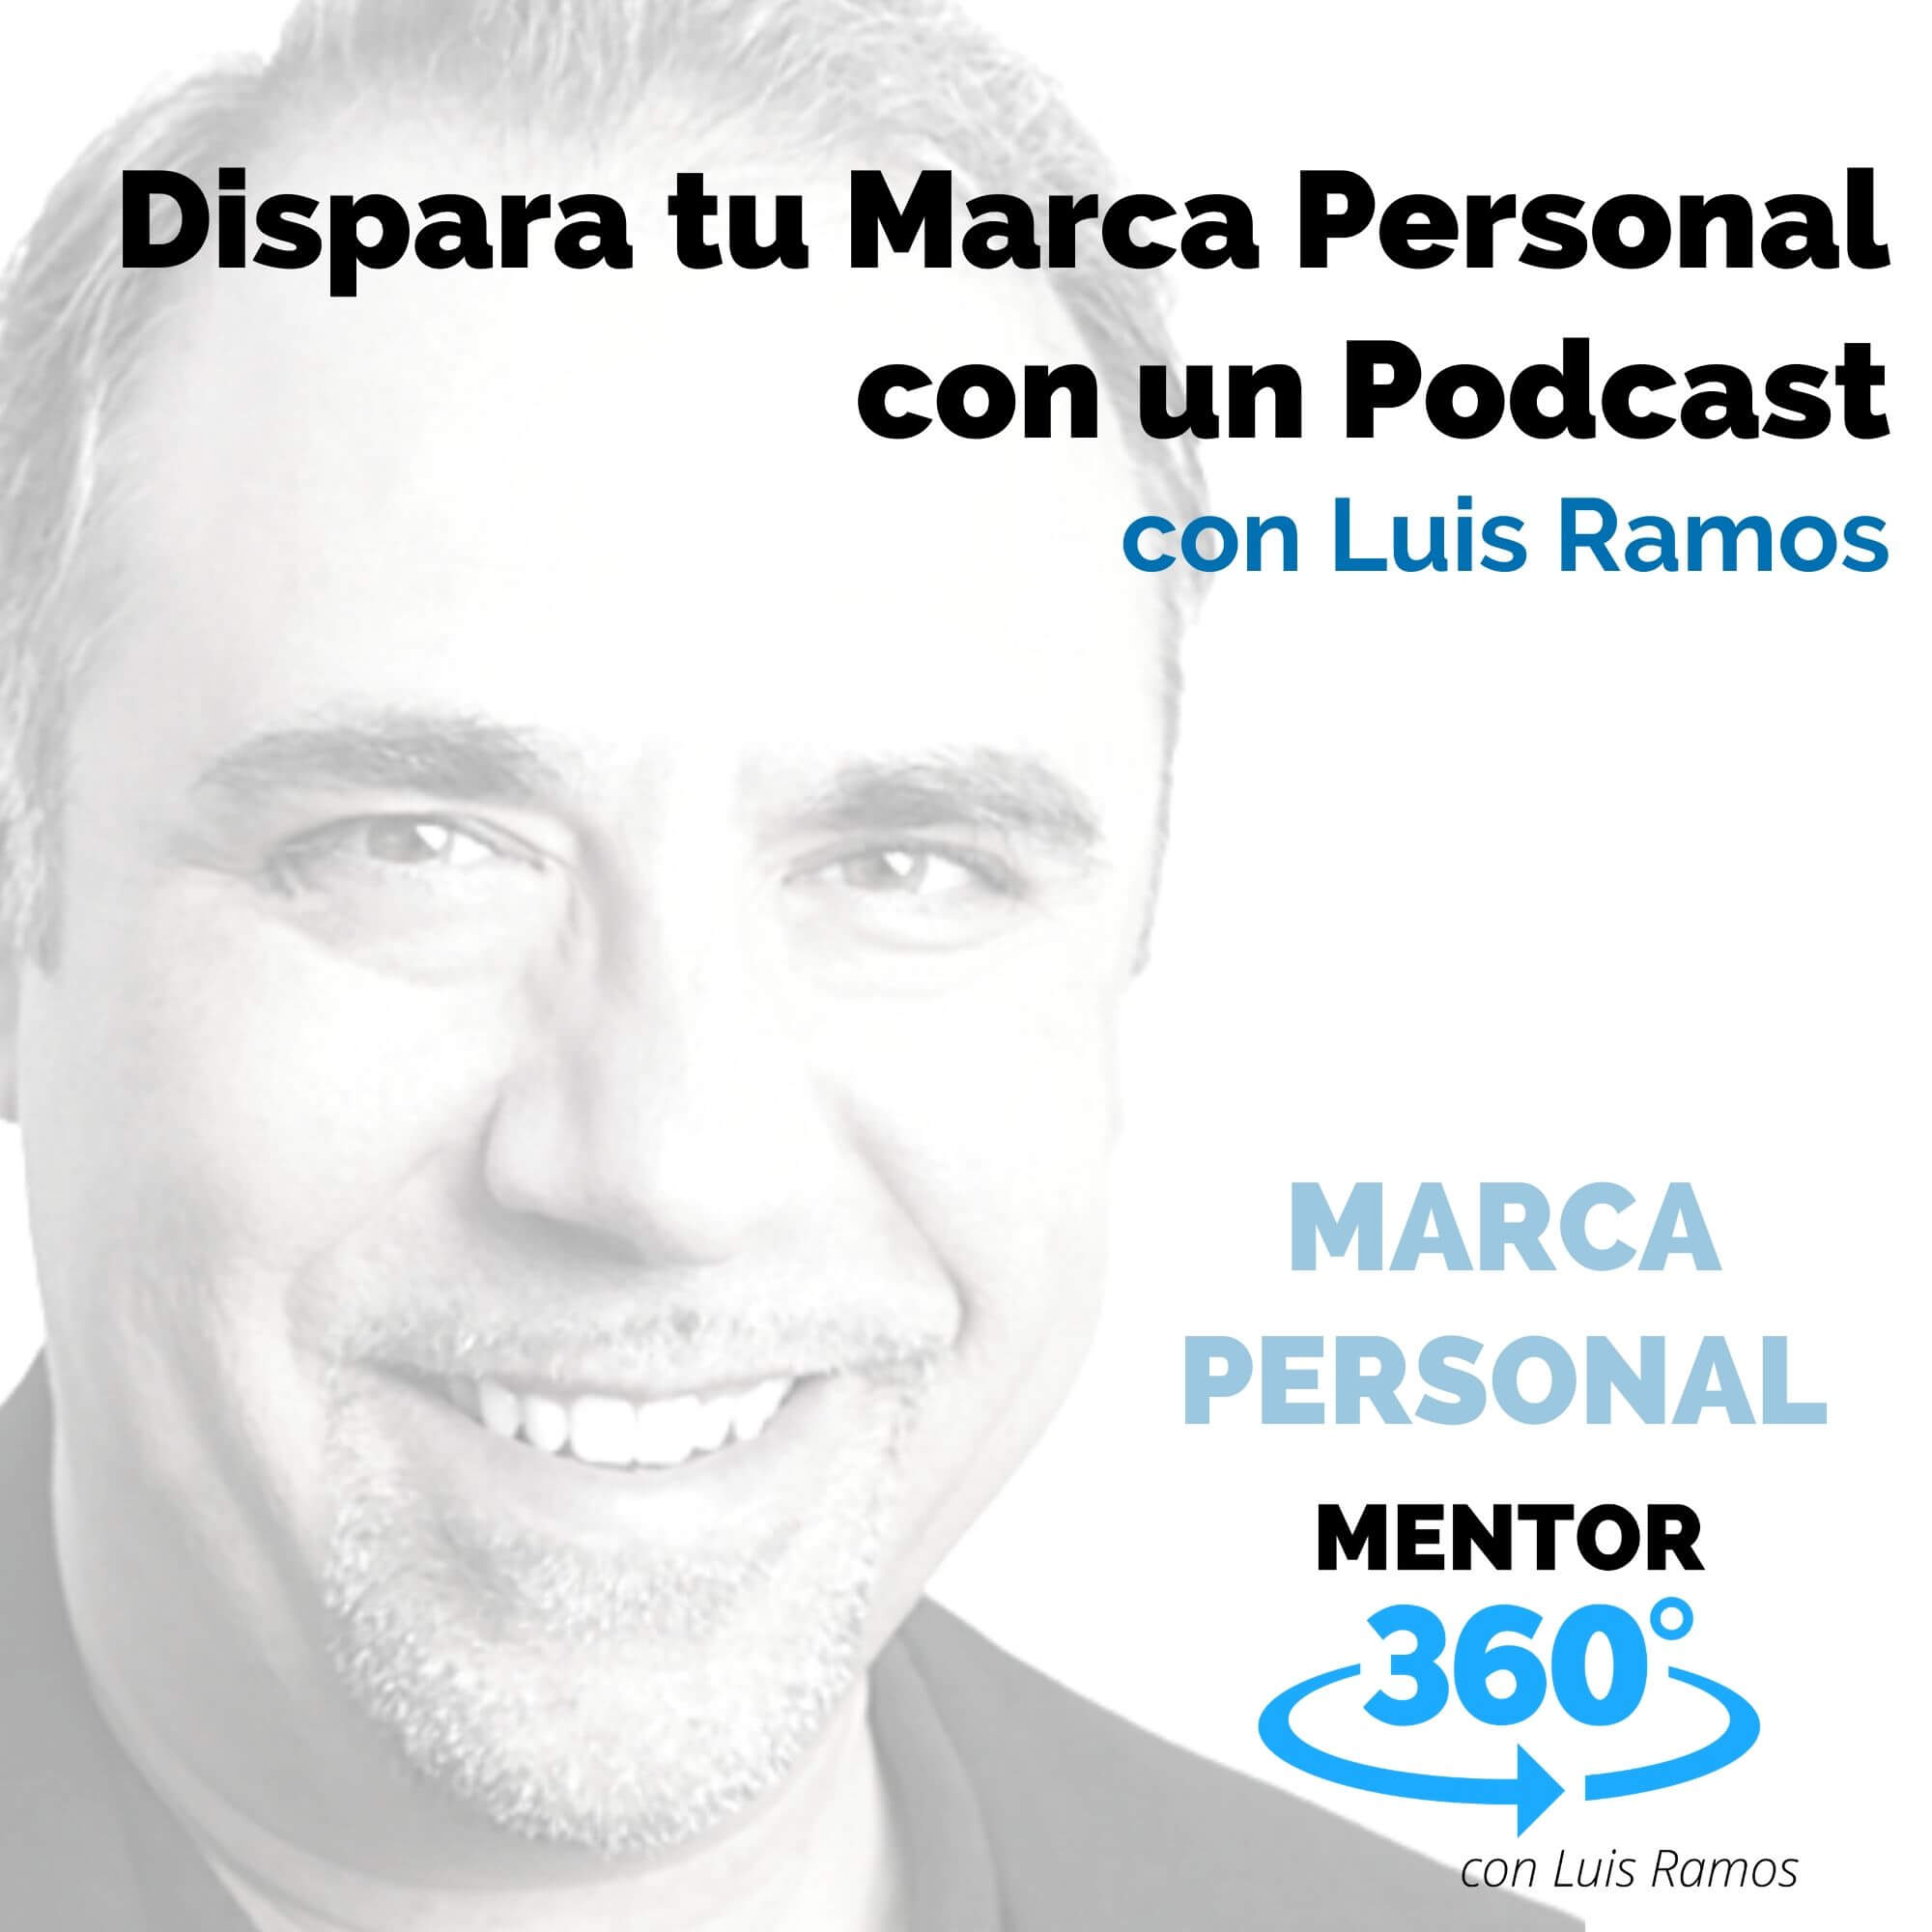 Dispara tu Marca Personal 1: El Podcast